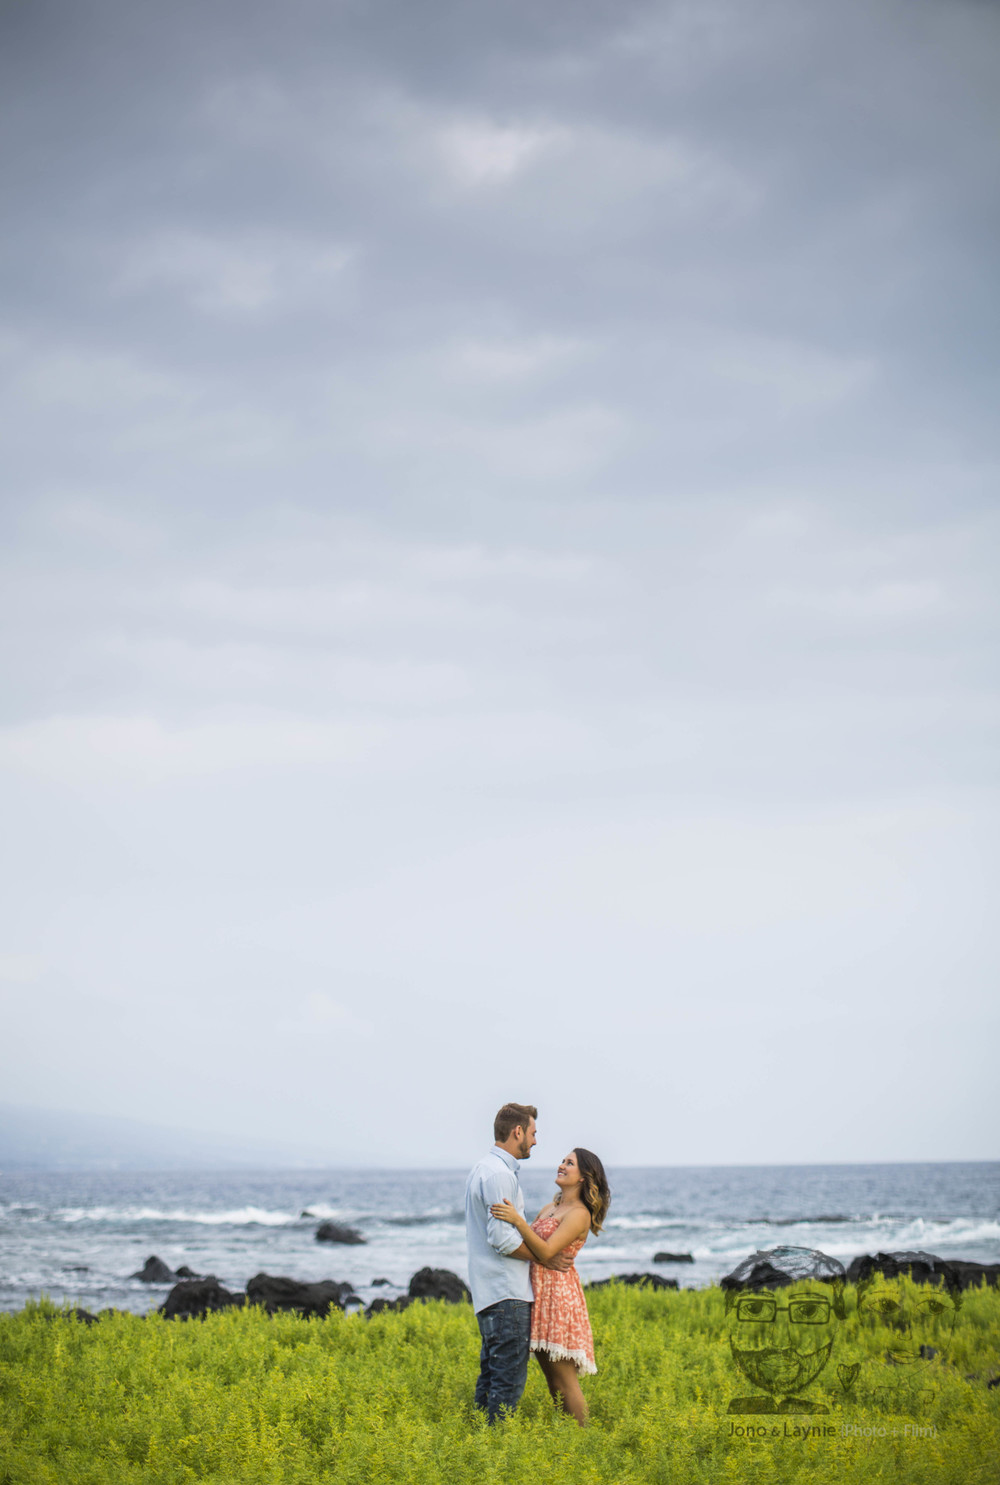 Jono & Laynie Co.-Kona, Hawaii-Engagement Session01.jpg